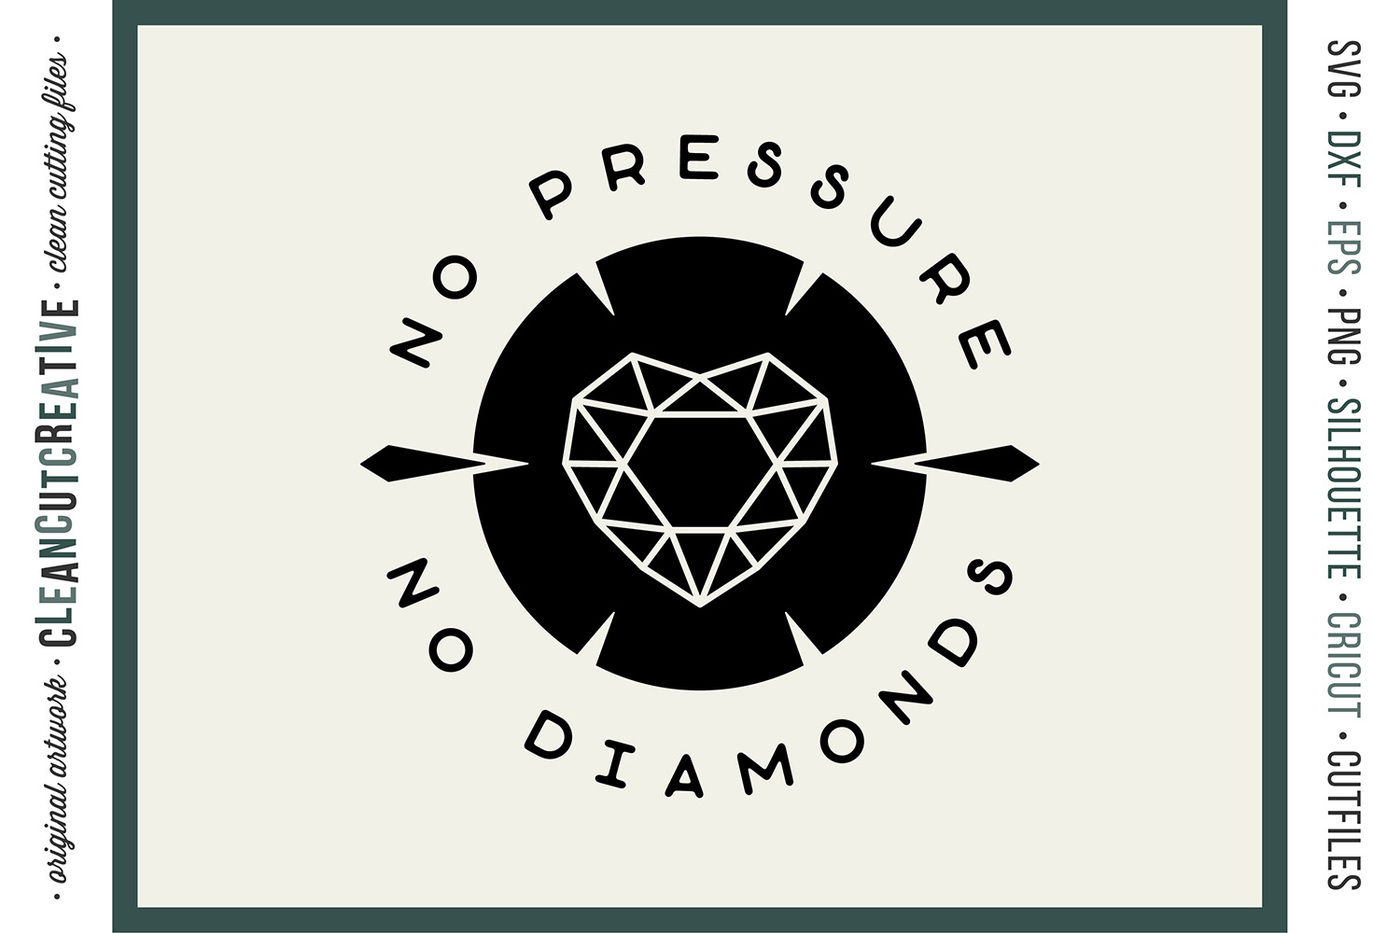 No Pressure No Diamonds Inspirational Quote Svg Dxf Eps Png By